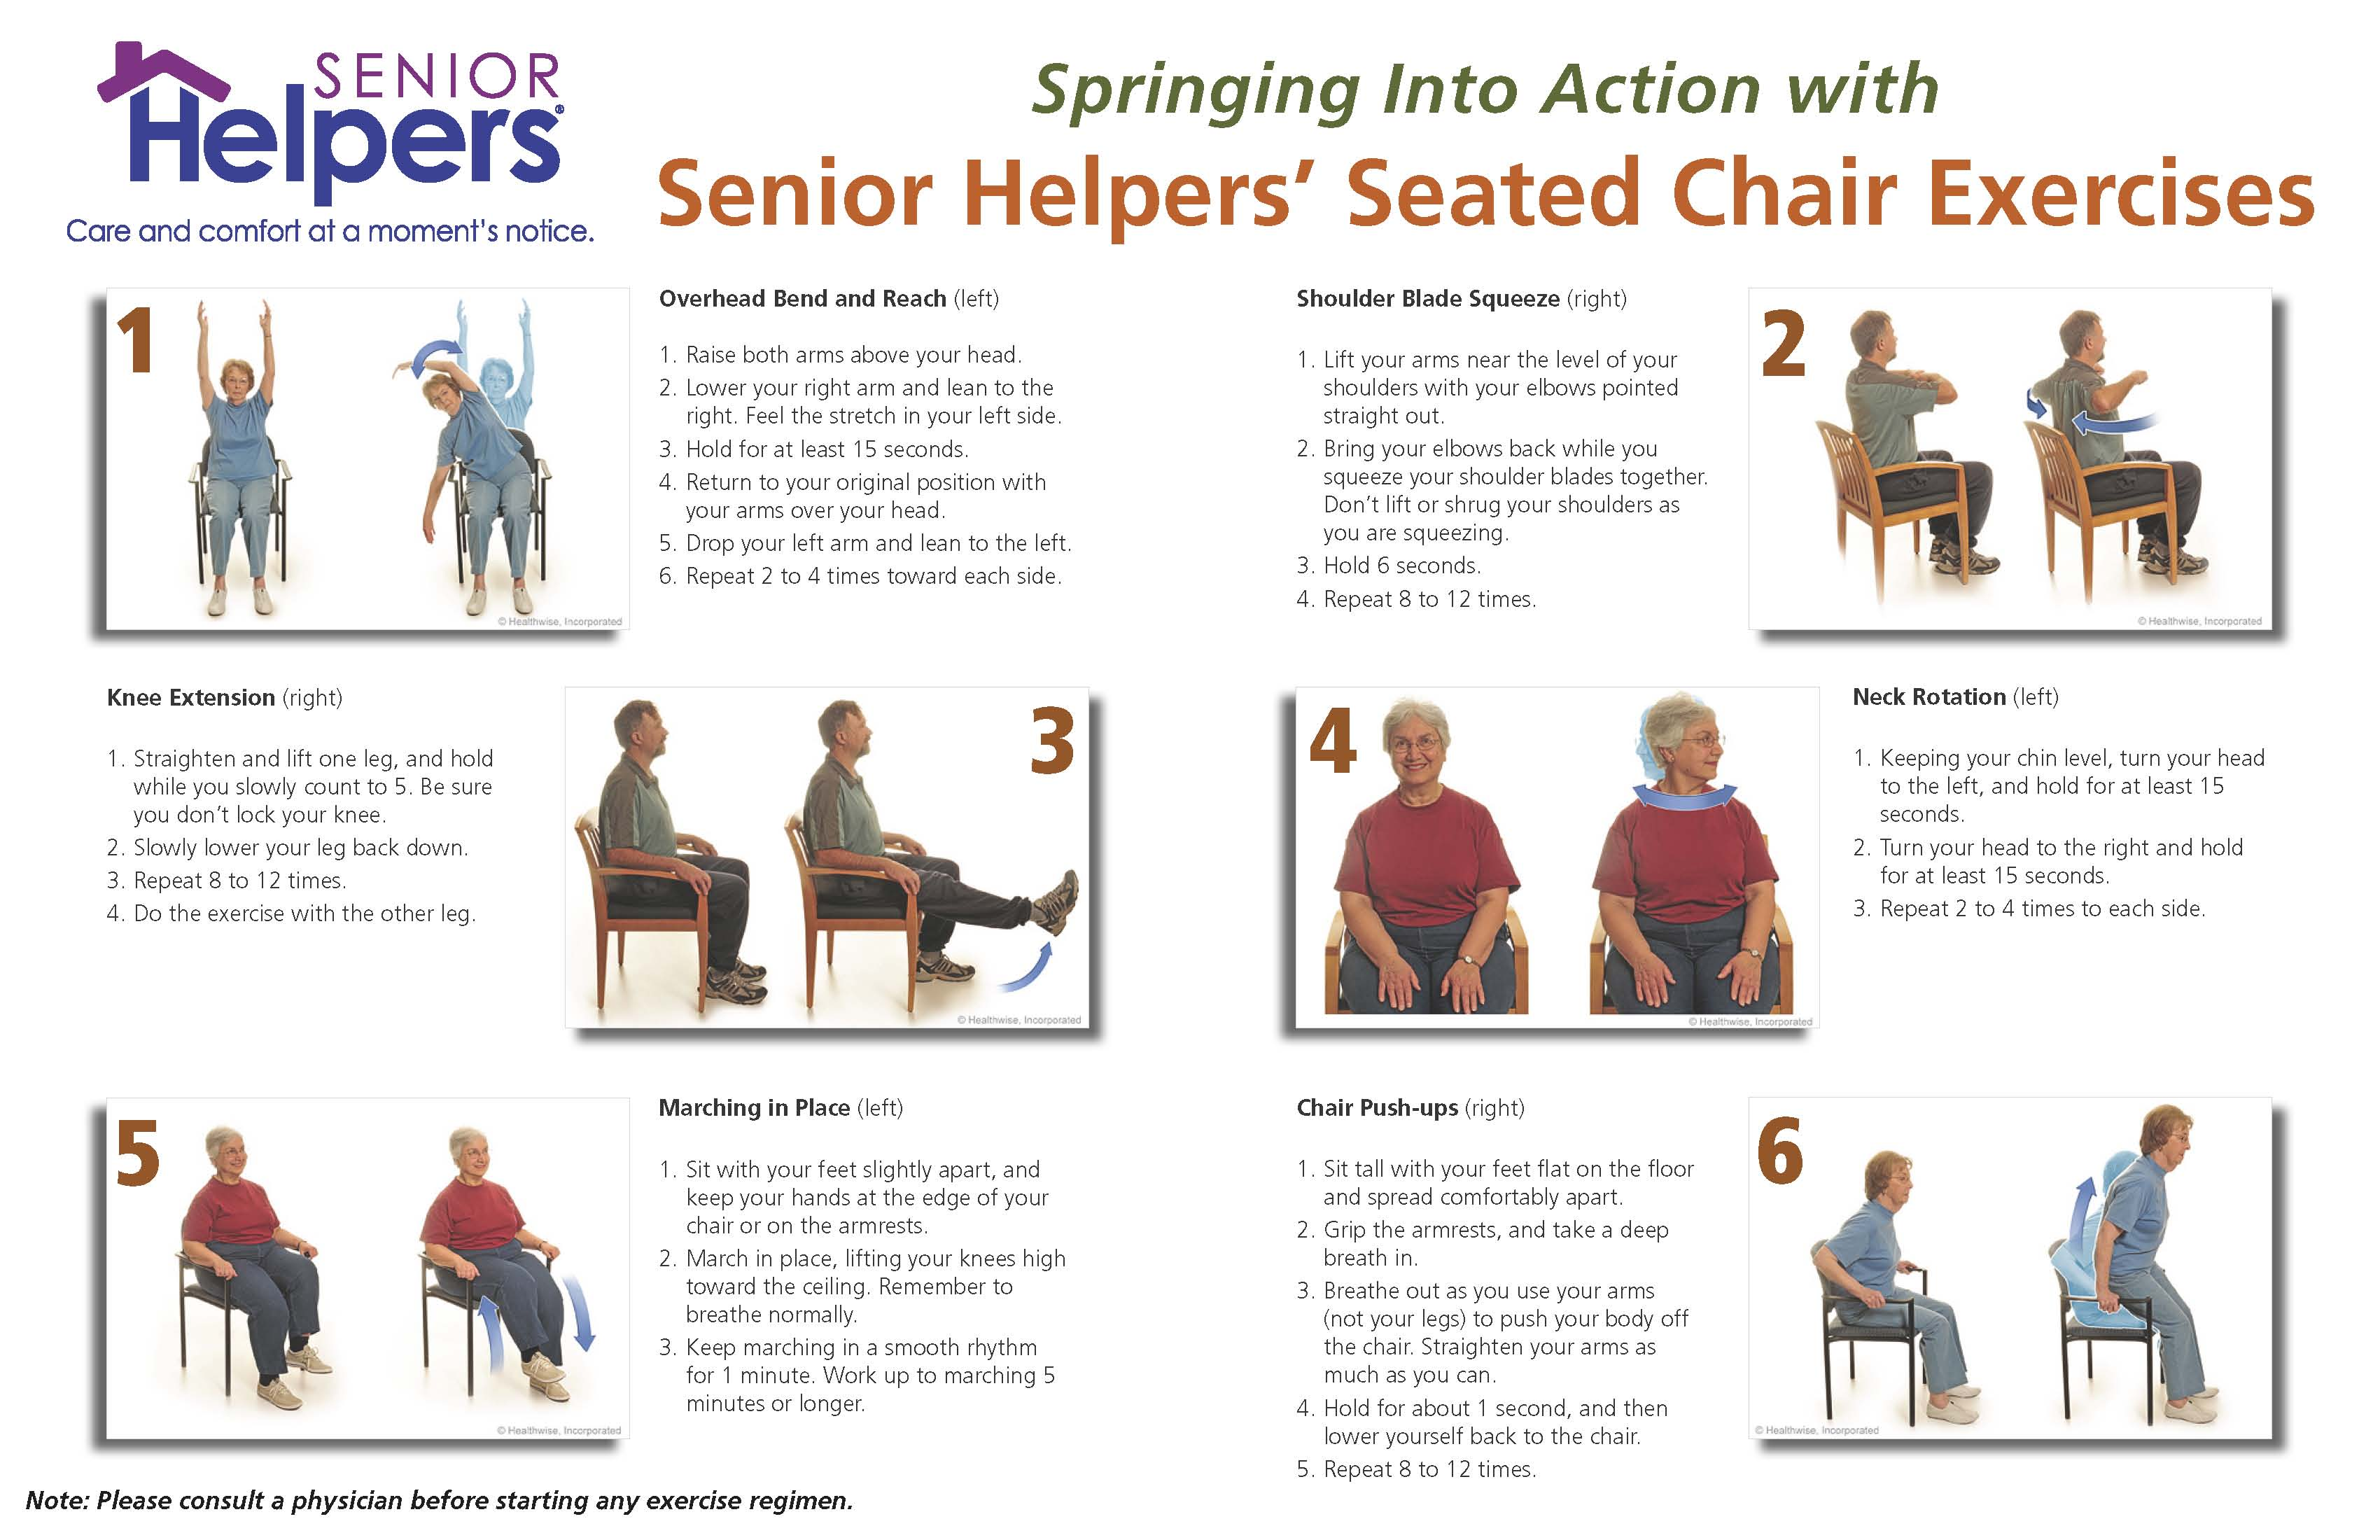 chair train for aged. chair exercise for elderly  sc 1 th 180 : chair workouts at work - Cheerinfomania.Com